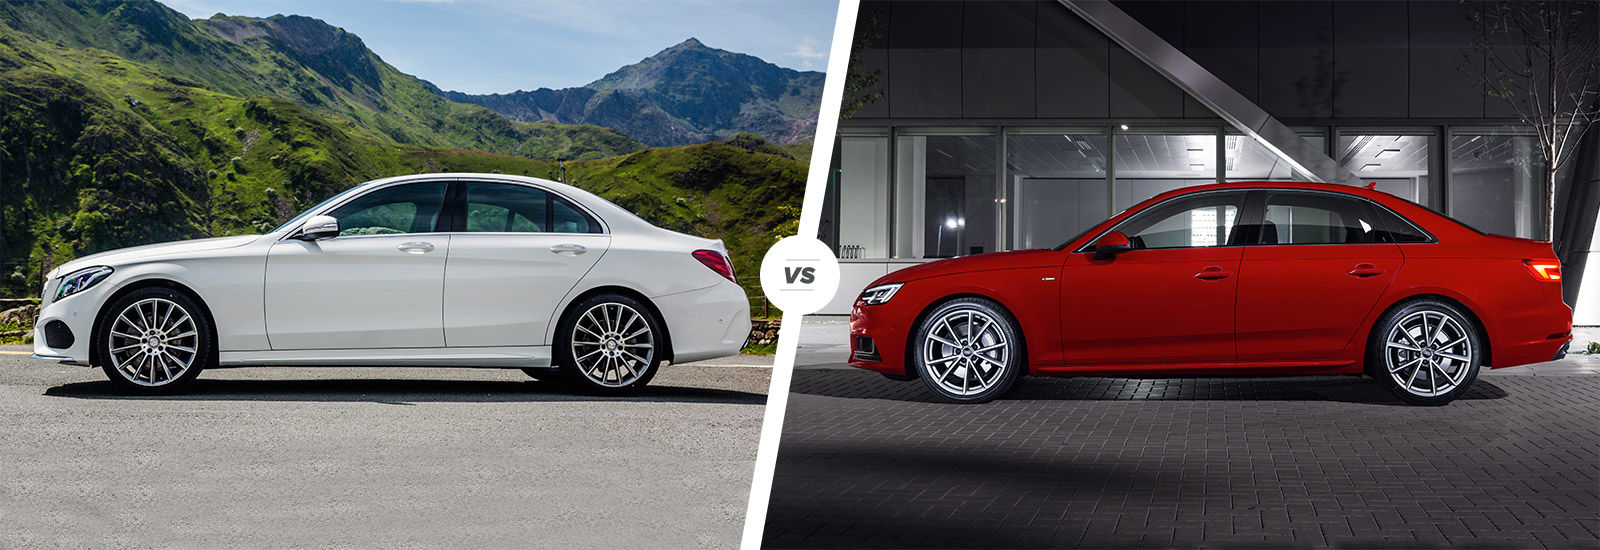 Audi audi a4 coup : Mercedes C-Class vs Audi A4 comparison | carwow